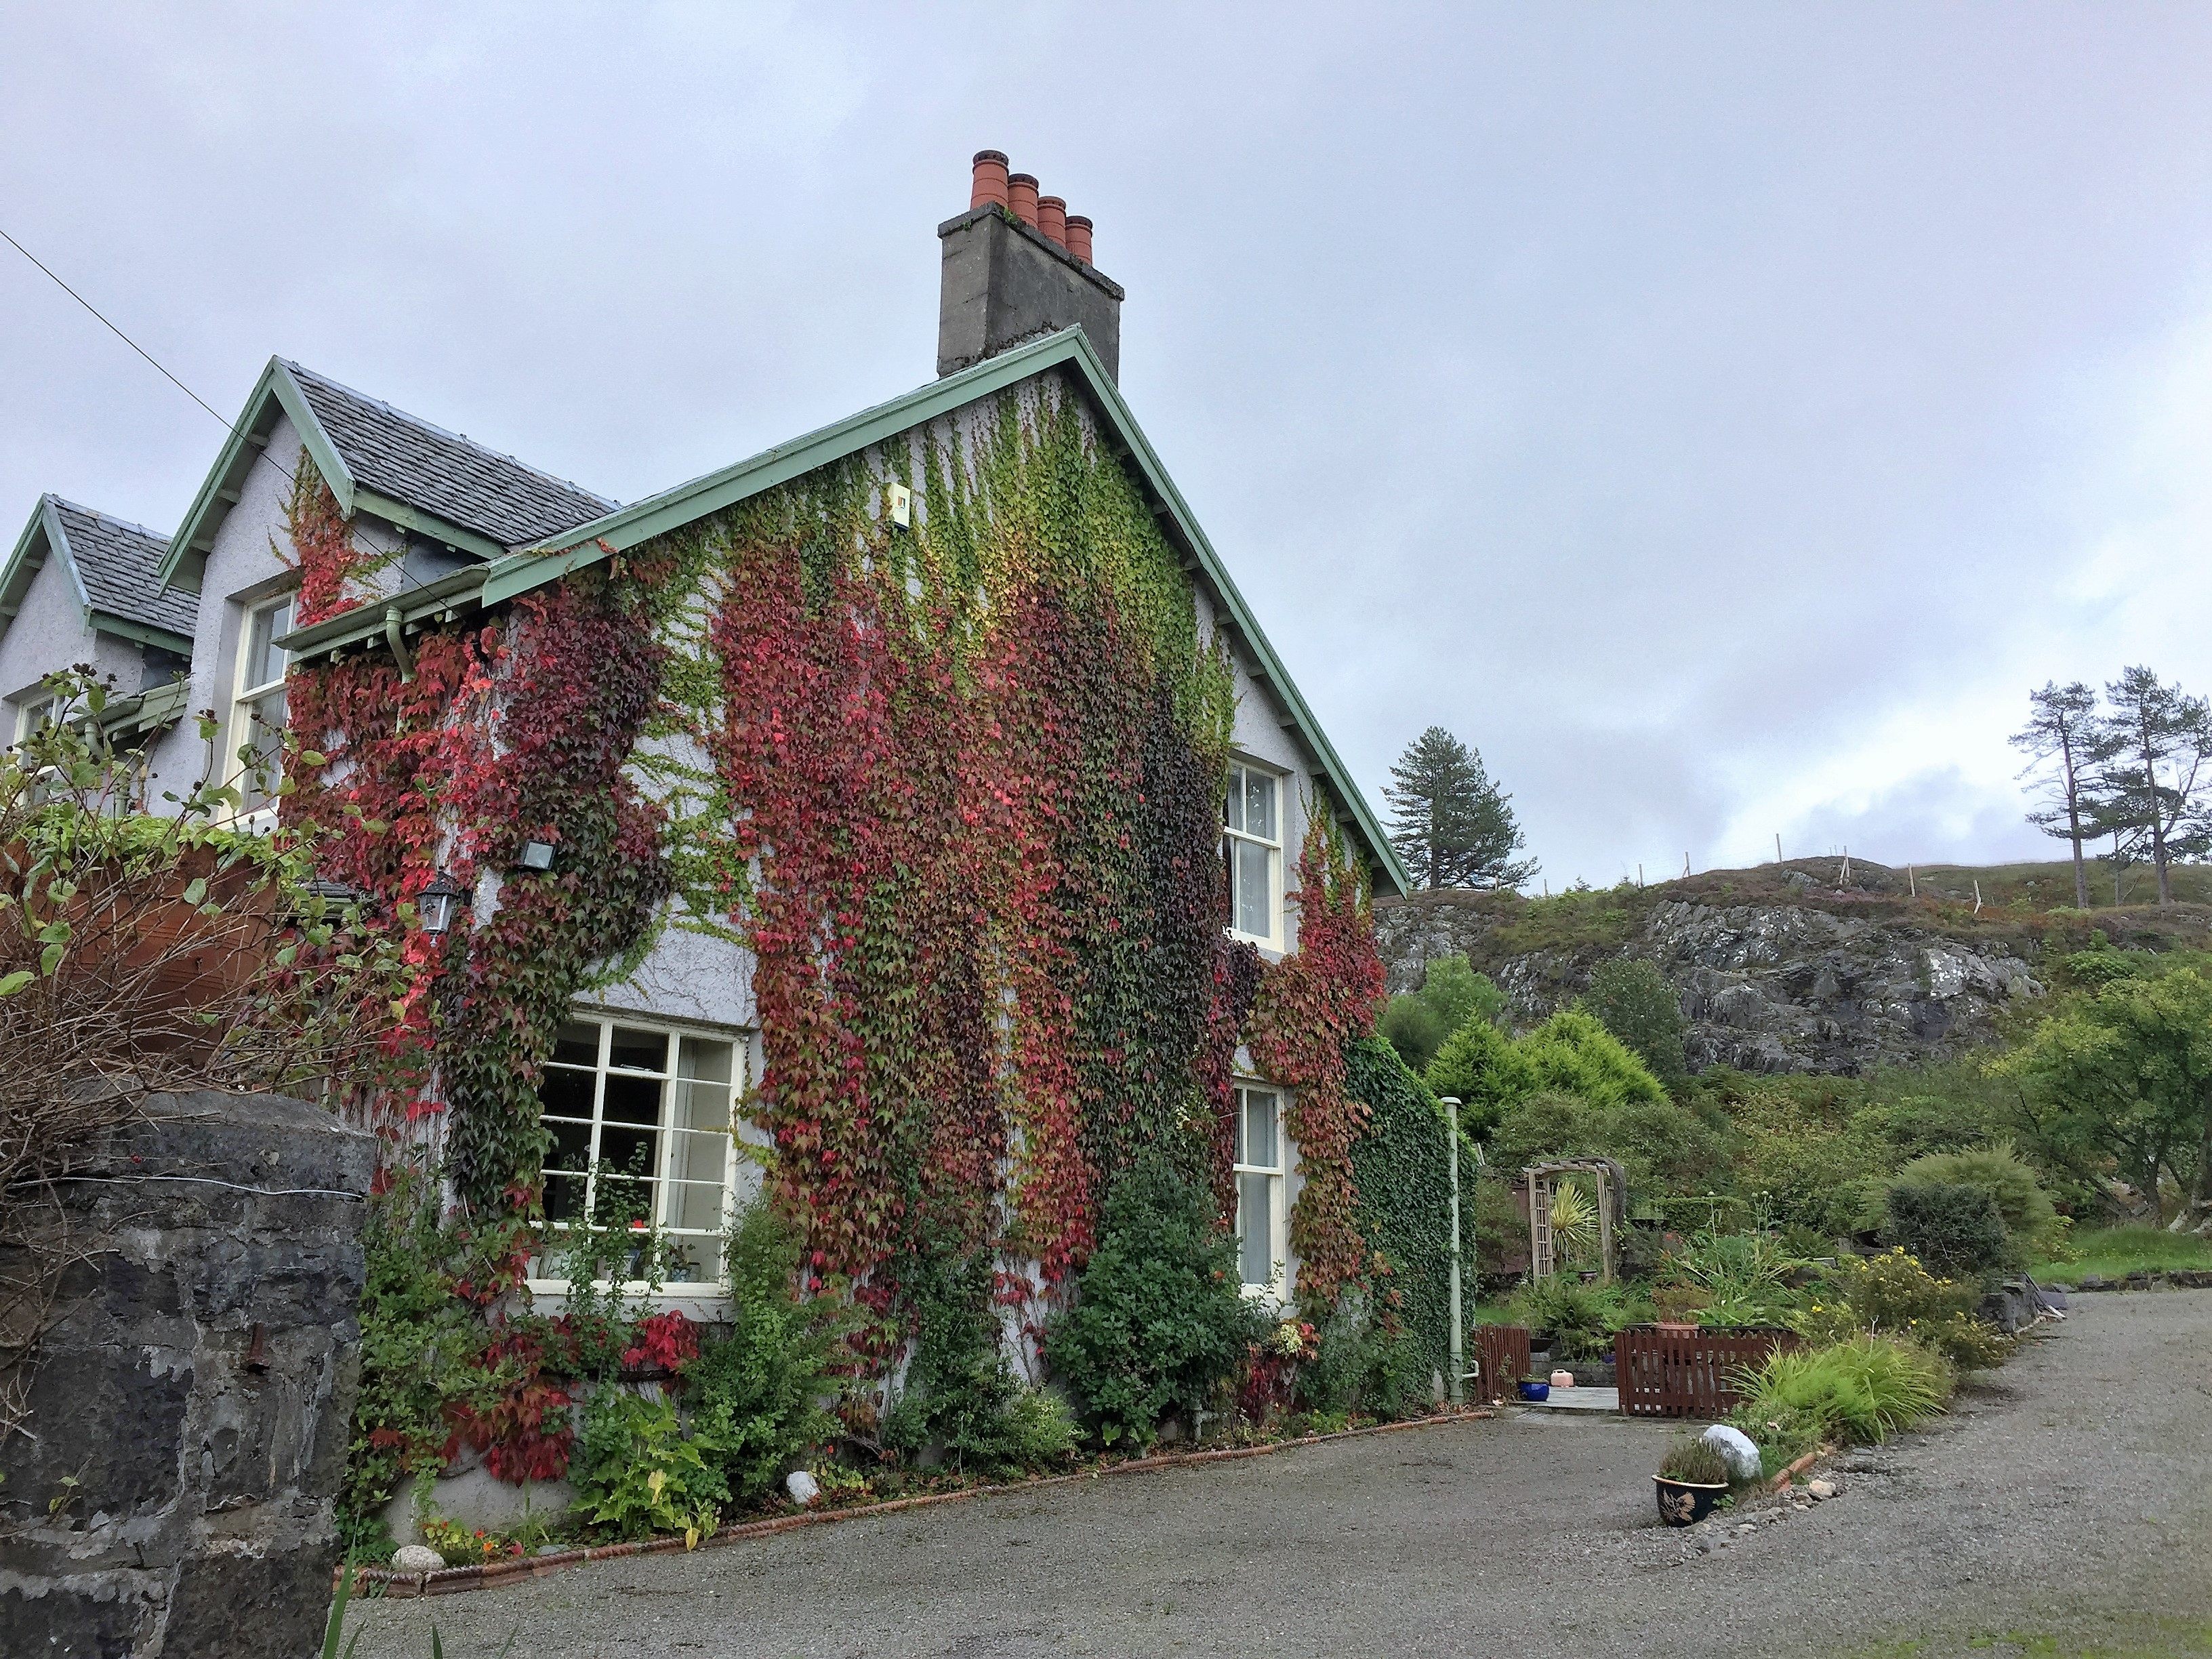 A house in Morar with beautiful vines.